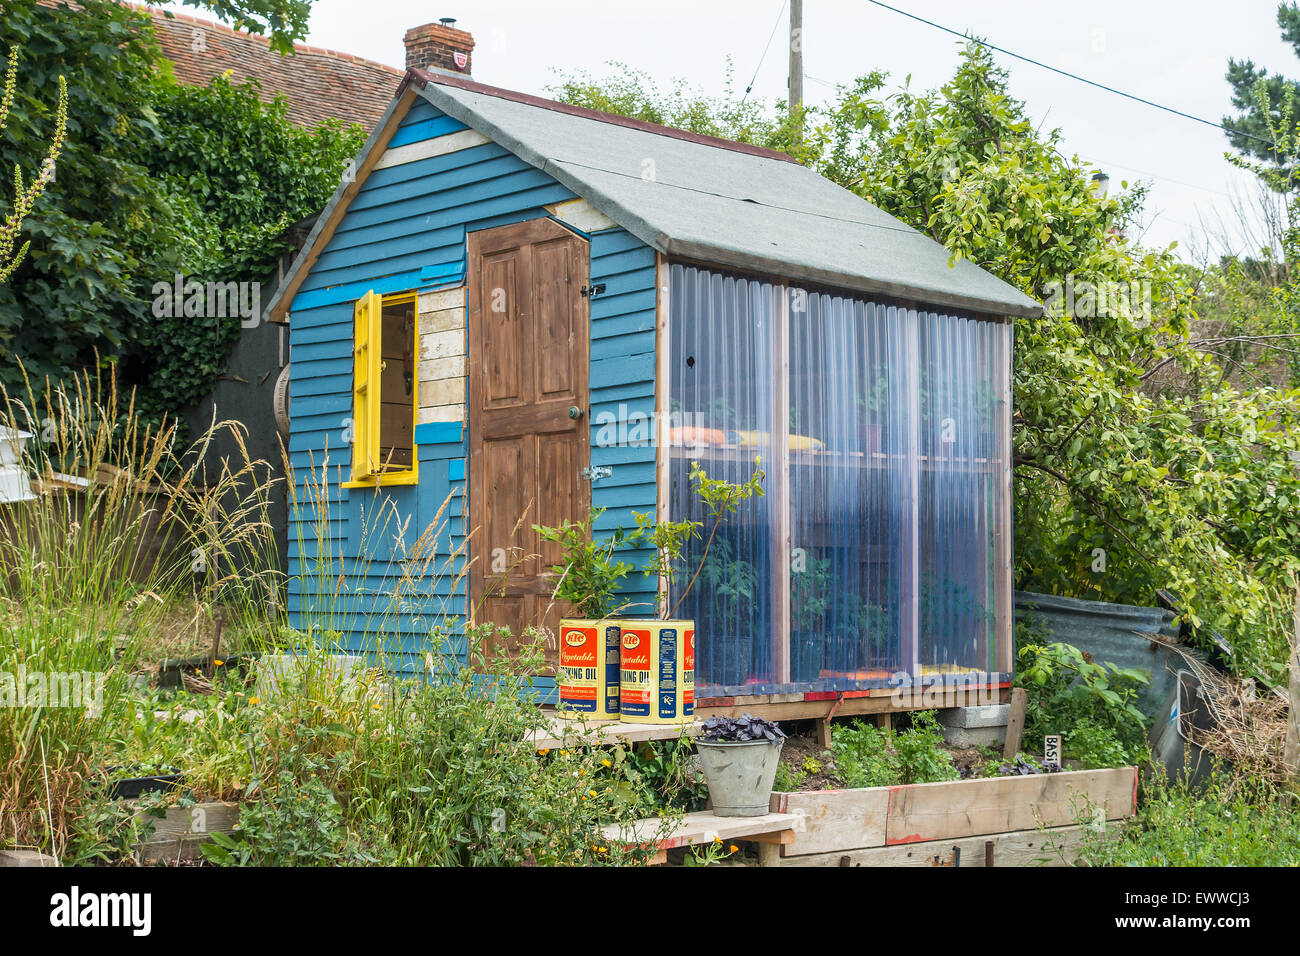 Allotment Shed and Greenhouse - Stock Image